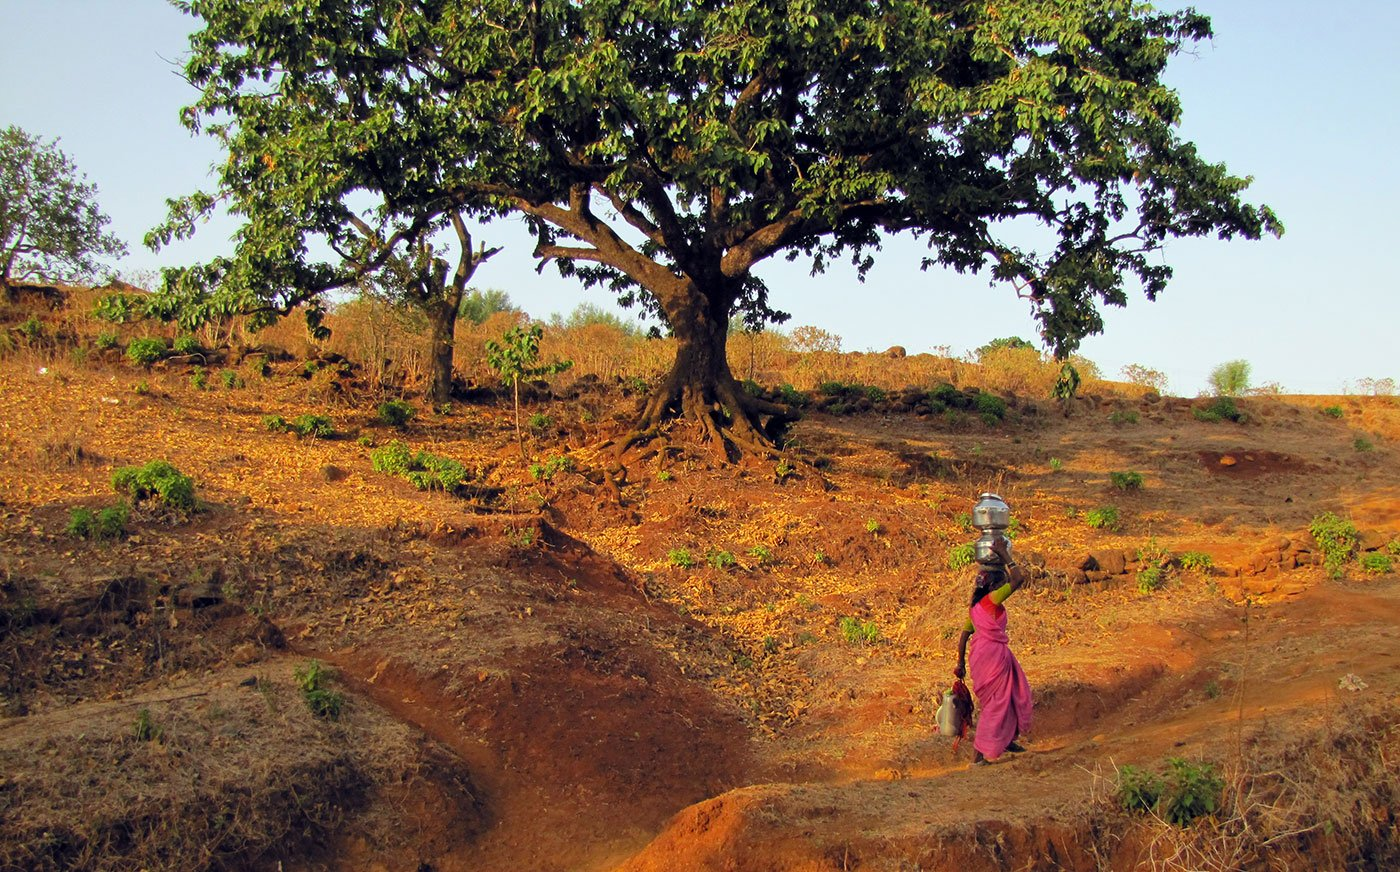 Woman walking up a slope carrying pots on her head